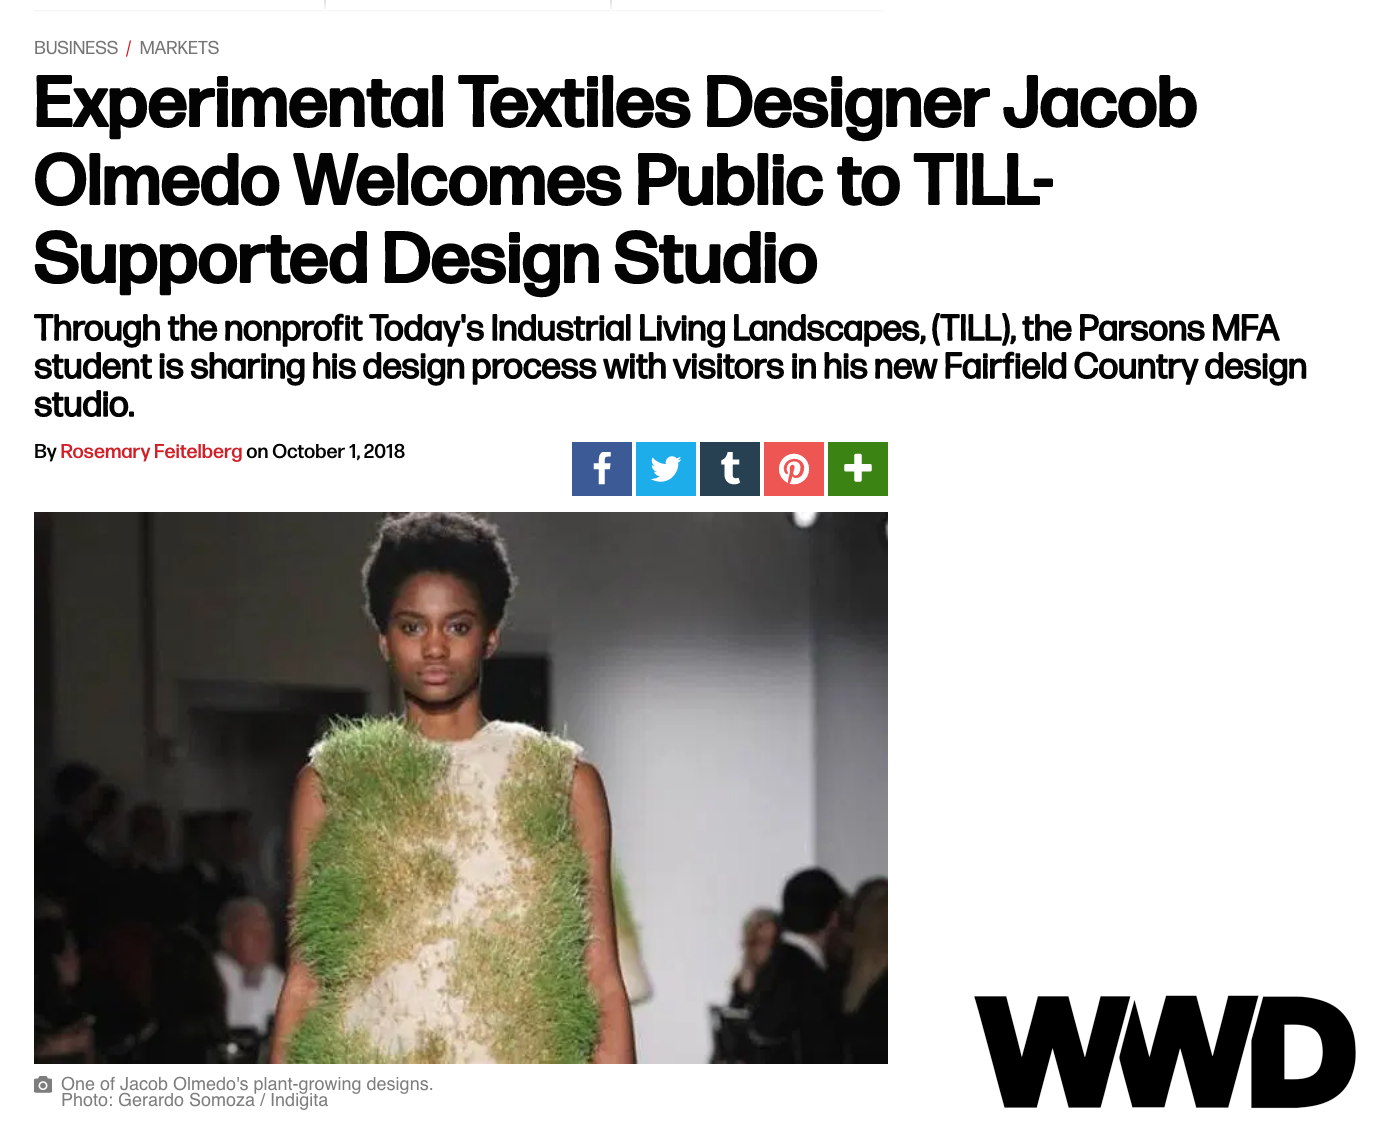 "WWD: ""Experimental Textiles Designer Jacob Olmedo Welcomes Public to TILL-Supported Design Studio"" - """"I feel so strongly that as a 21st century artist, the art of our day is reinventing how we live on earth – our systems of energy, mobility, our built environment, fashion and industrial agriculture, These systems have to be reinvented. It's going to take these people who can imagine the future for real.""October 1, 2018"